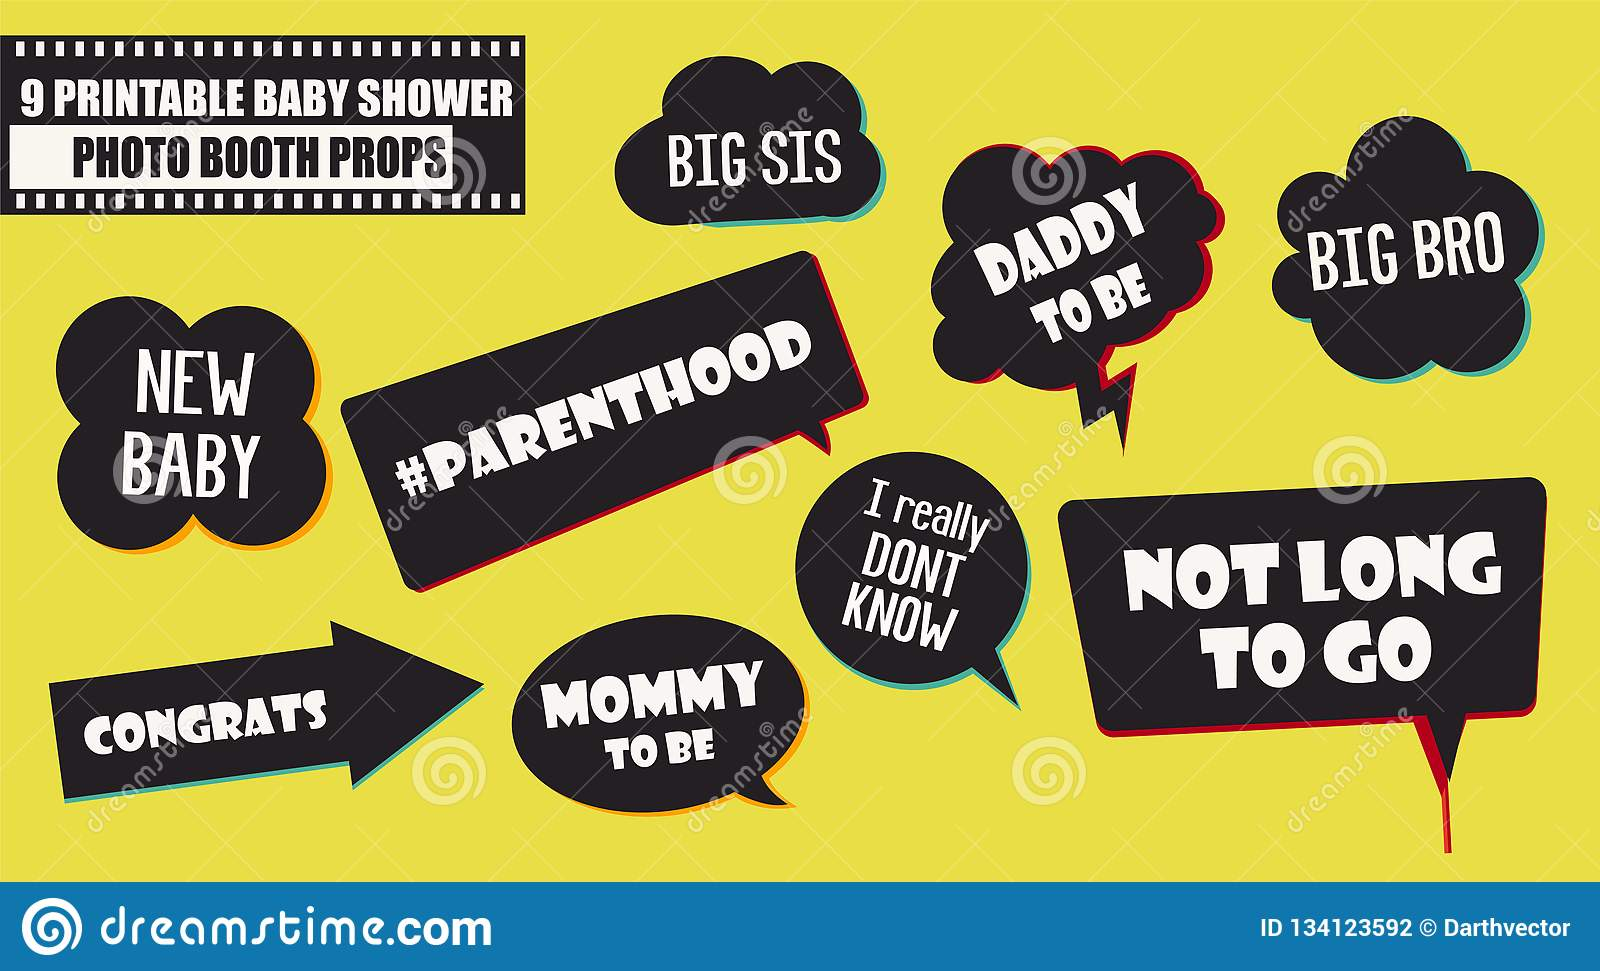 Baby shower photo booth props vector elements